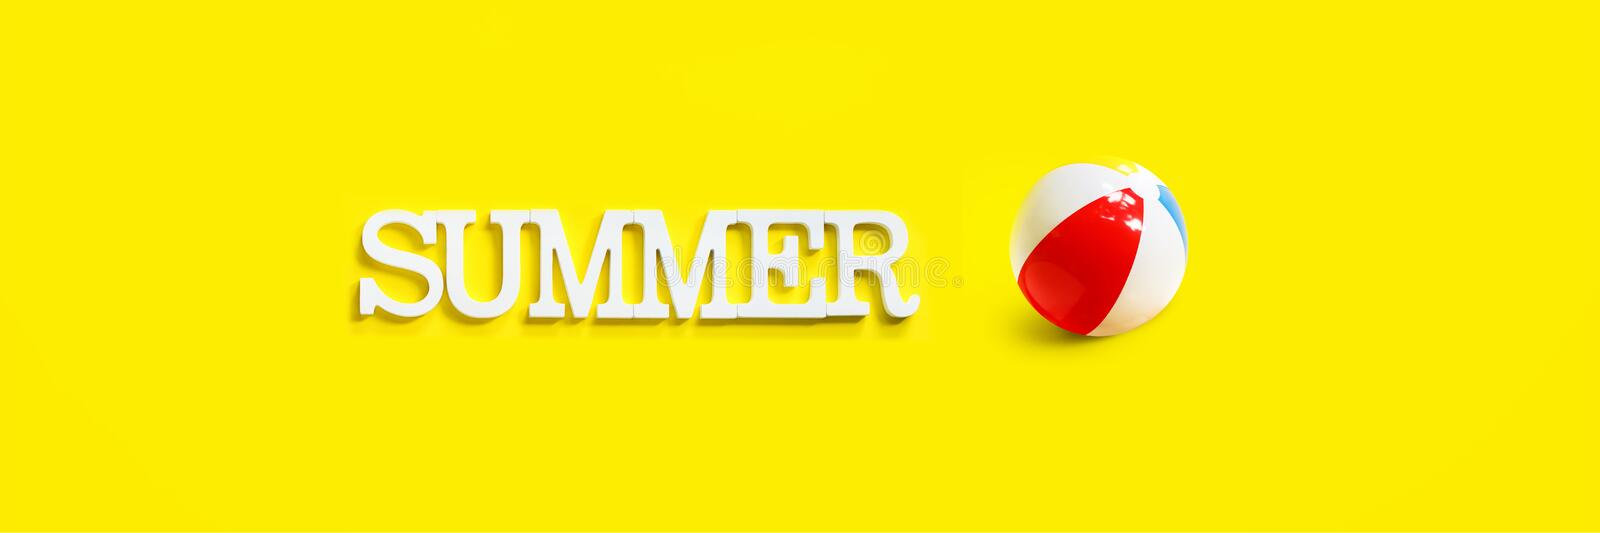 Long banner inflatable ball color white blue red. White volume letters top view. summer time. flat lay yellow background copy space single concept Copy space royalty free stock images